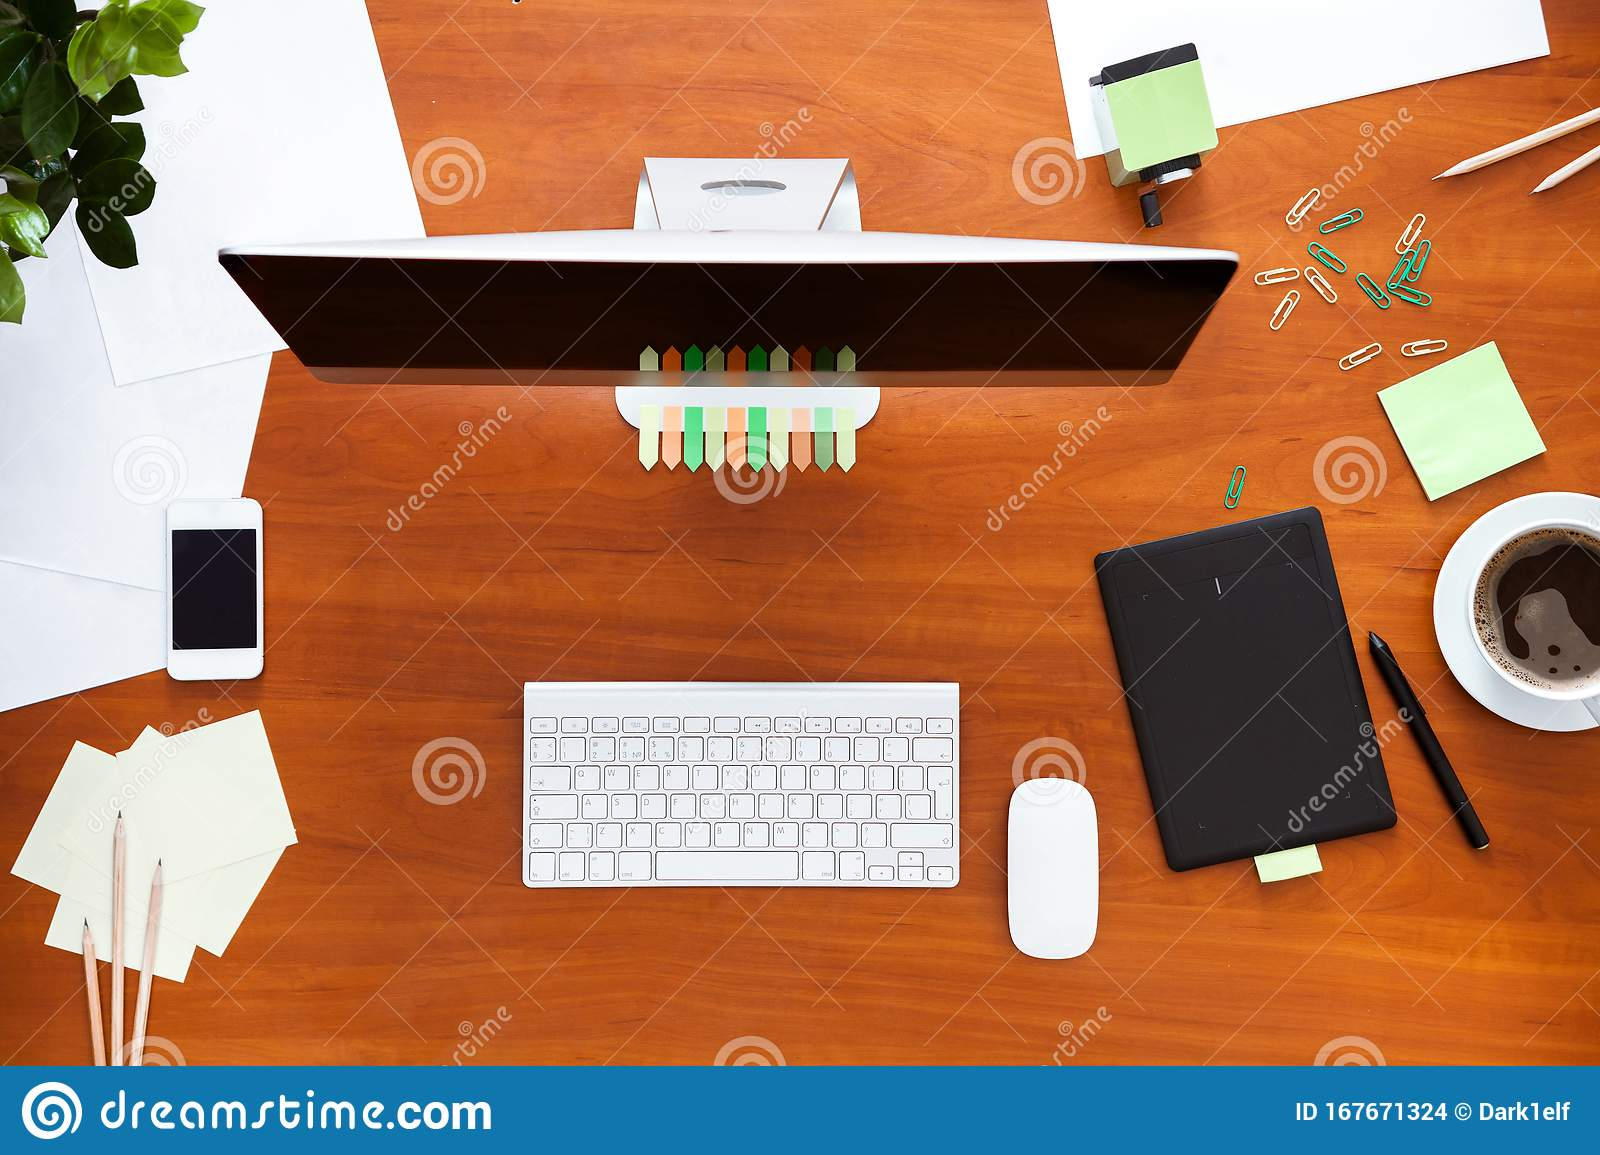 Business Work Desk With Computer And Supplies Modern Office